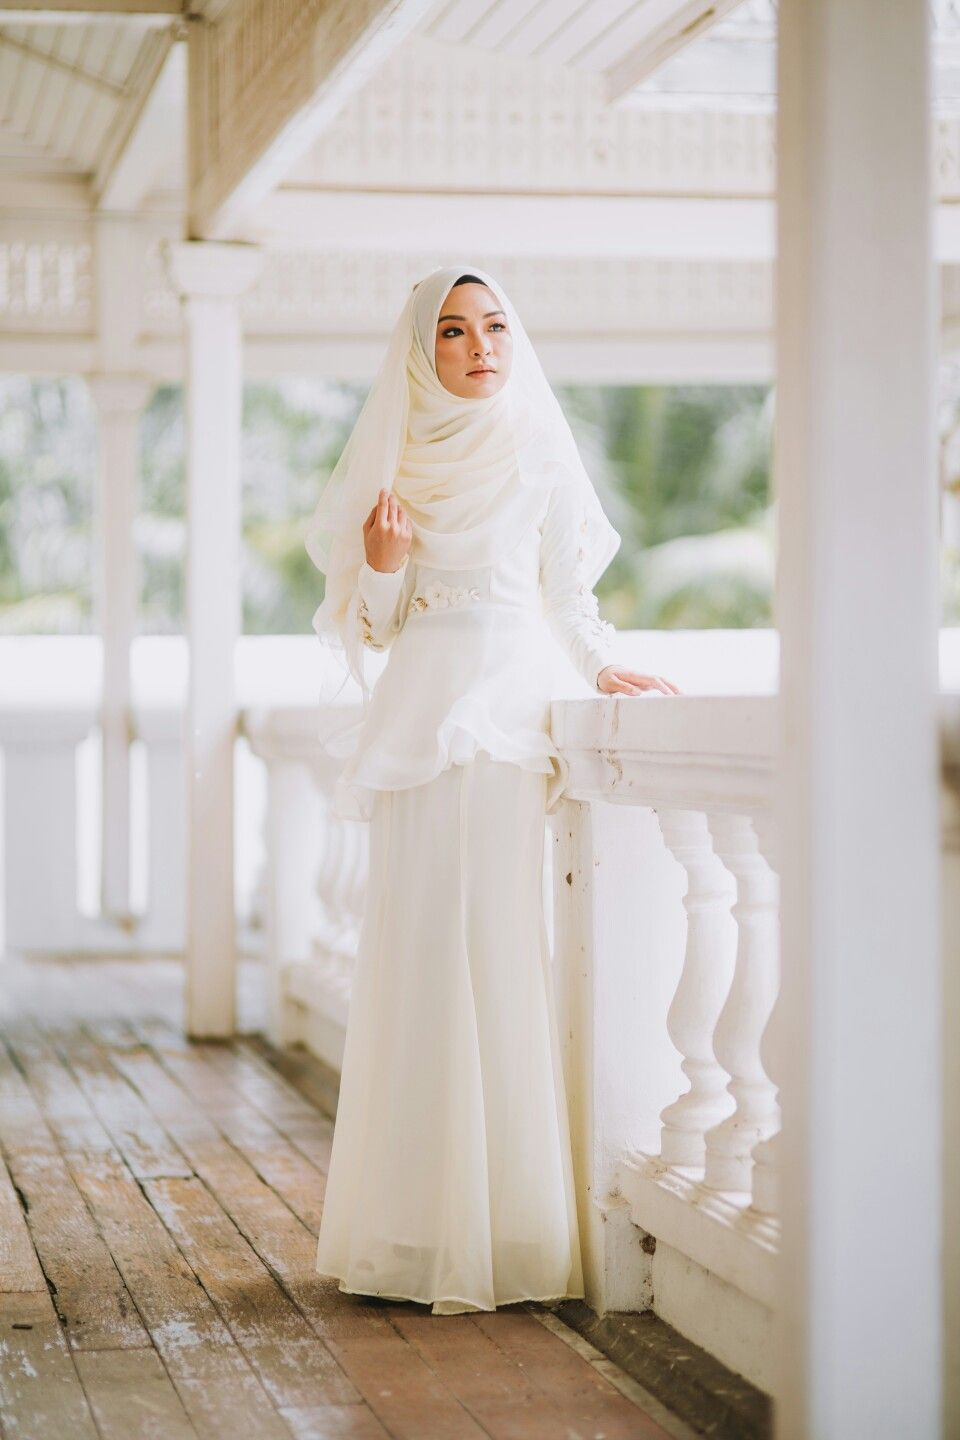 Eldora Peplum in Cream from Fleur Edition Baju Nikah & Tunang